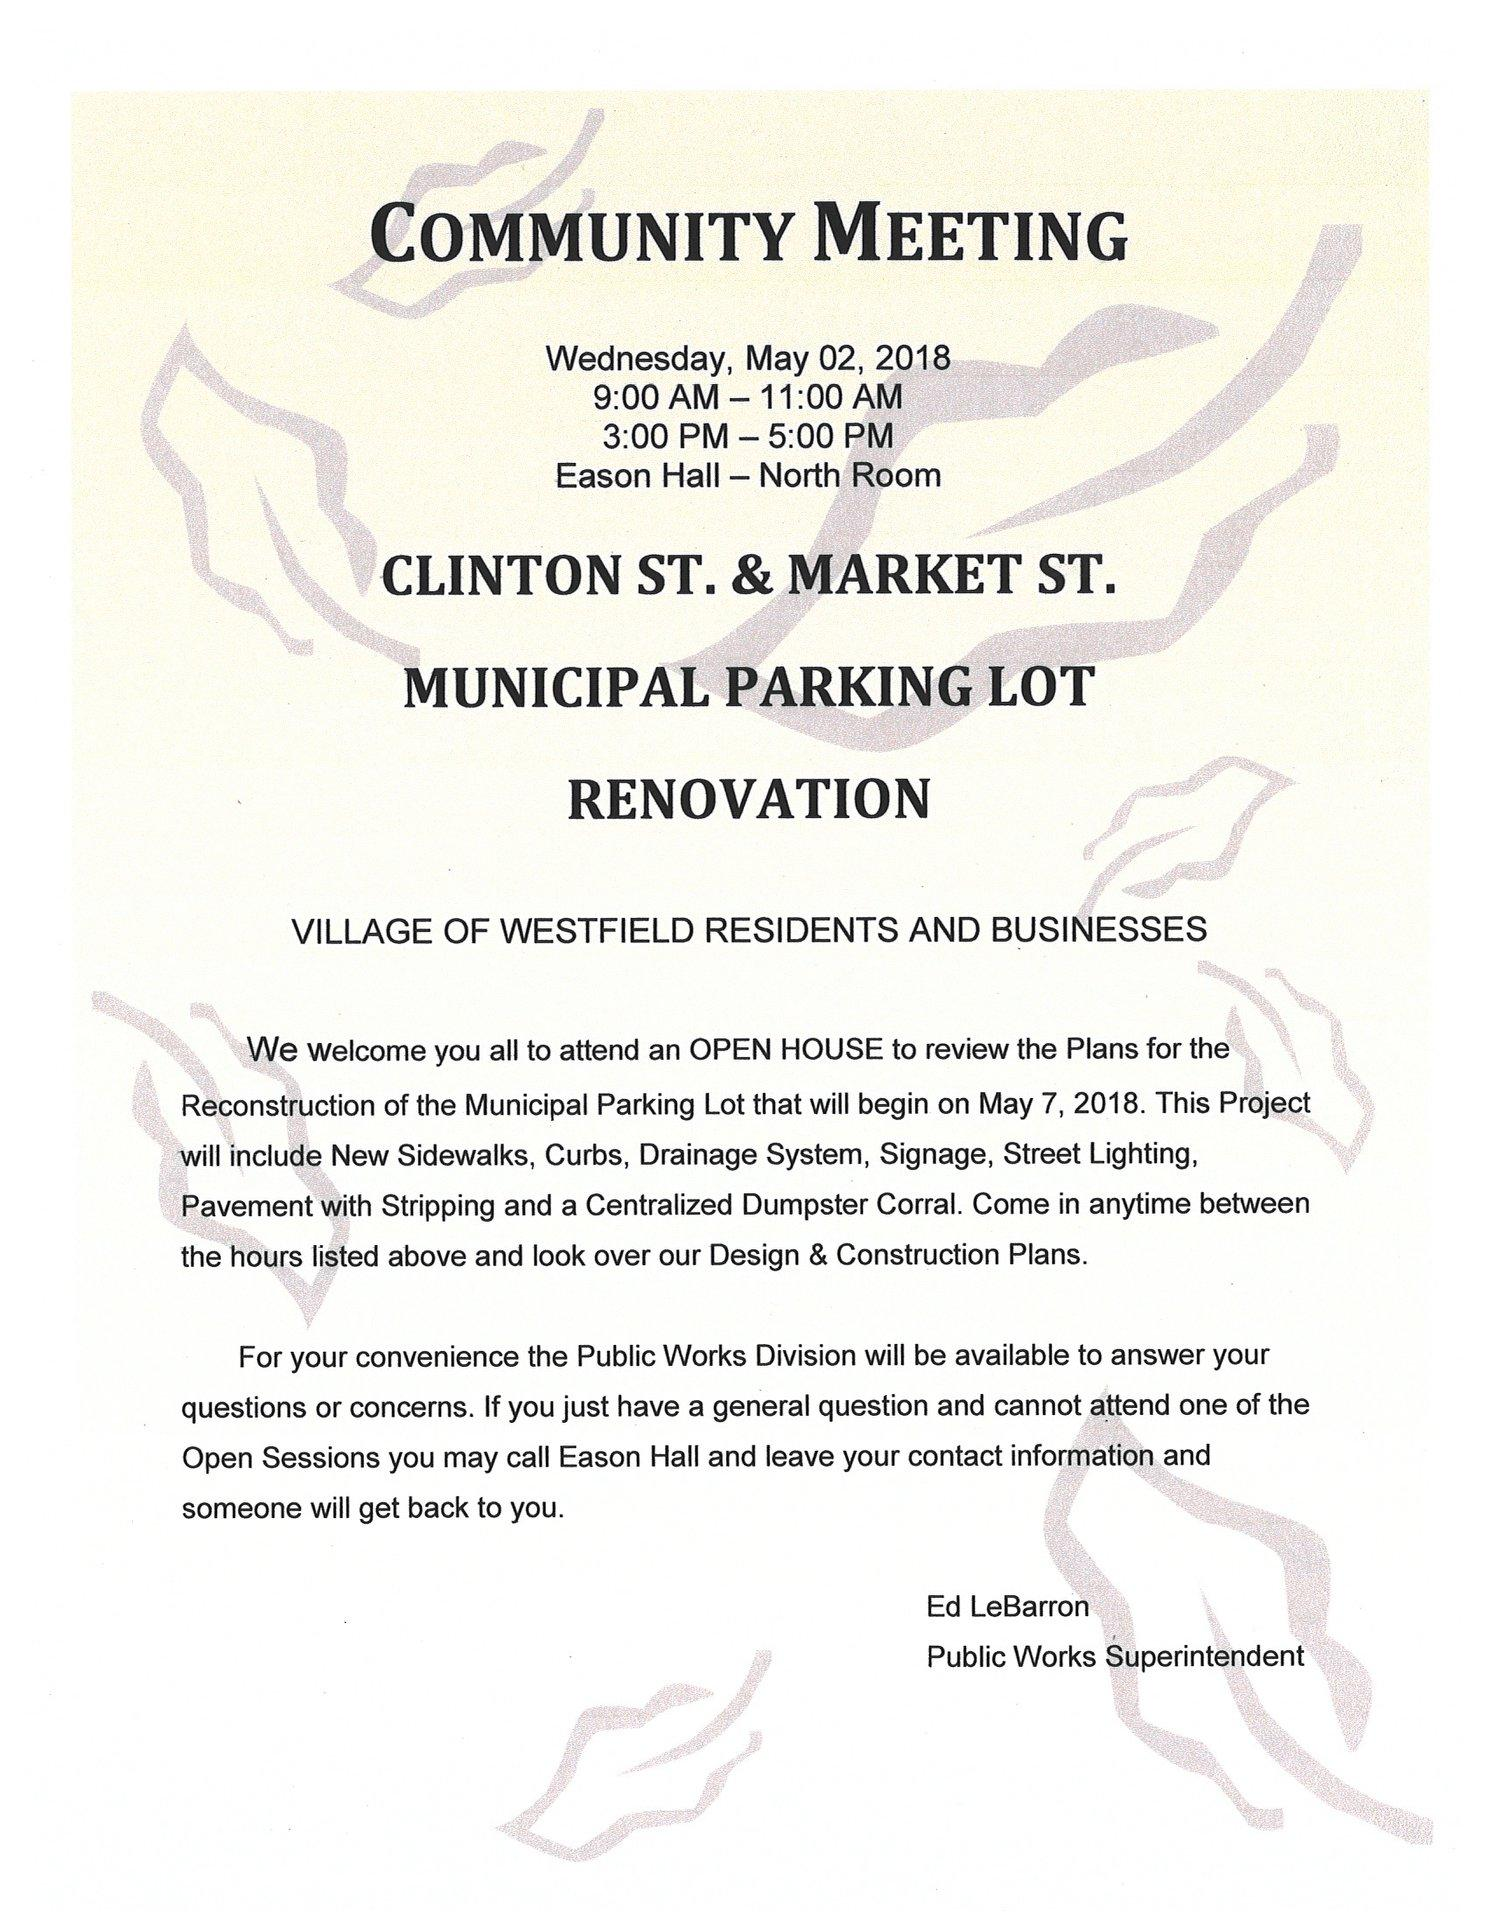 Municipal Parking Lot Renovation Community Meeting